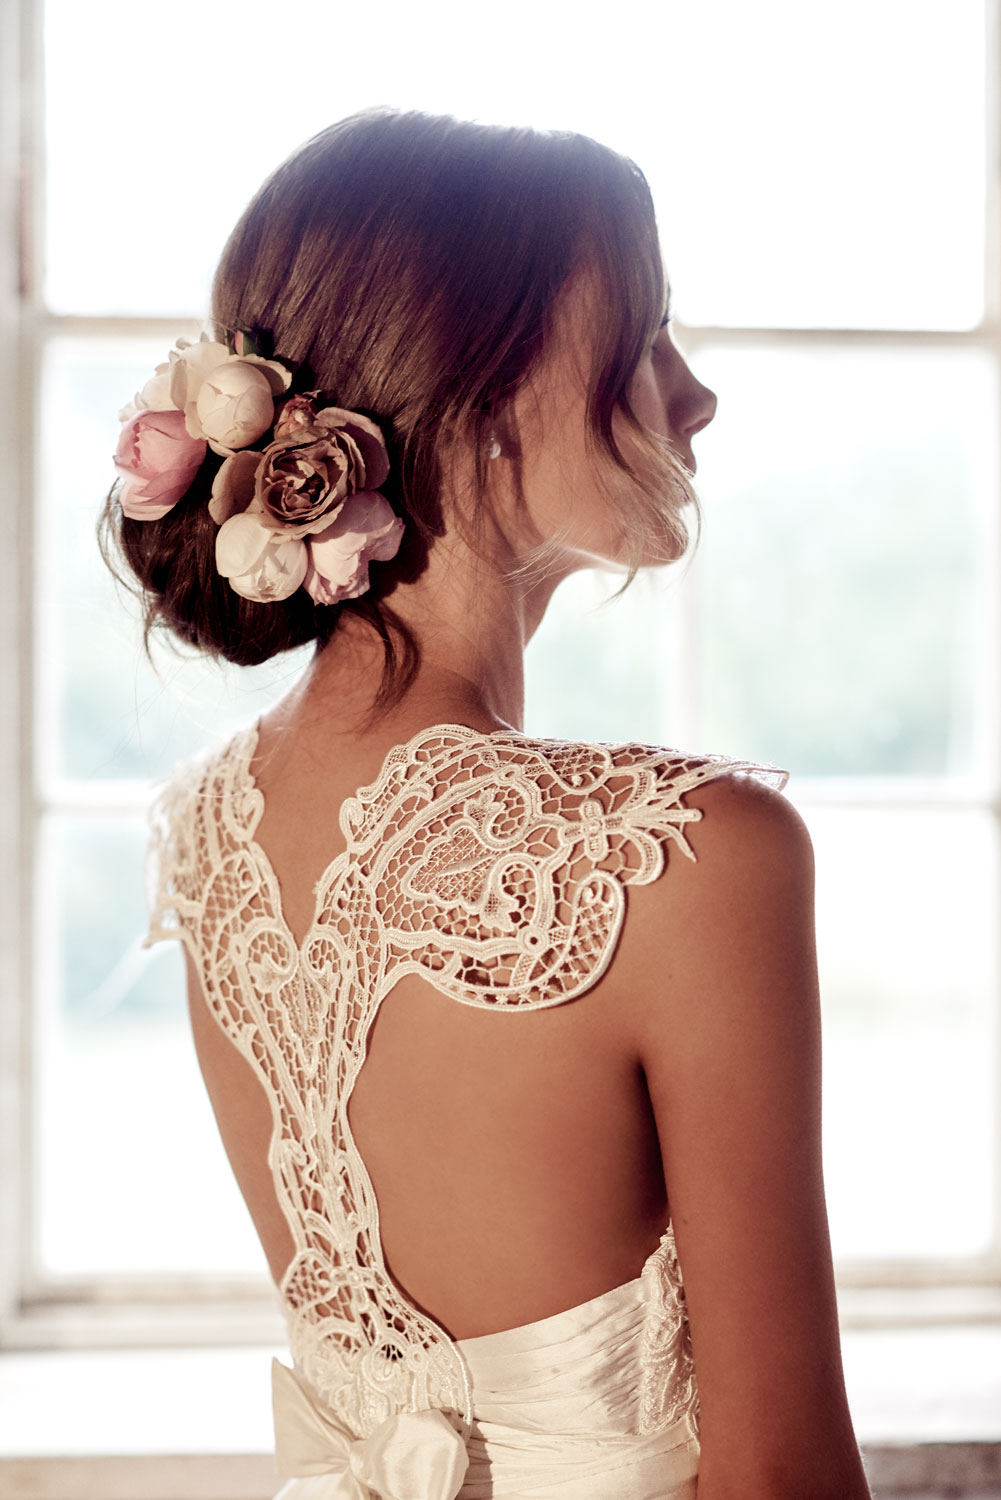 Eleanor - Featuring a flattering T-bar vintage guipure lace back detail that skims down the shoulder blades to finish in the classic Anna Campbell silk bow, the Eleanor is a romantic gown full of feminine charm. A strong ivory guipure lace adds a distinct modern element to this timeless and beautiful bridal look.